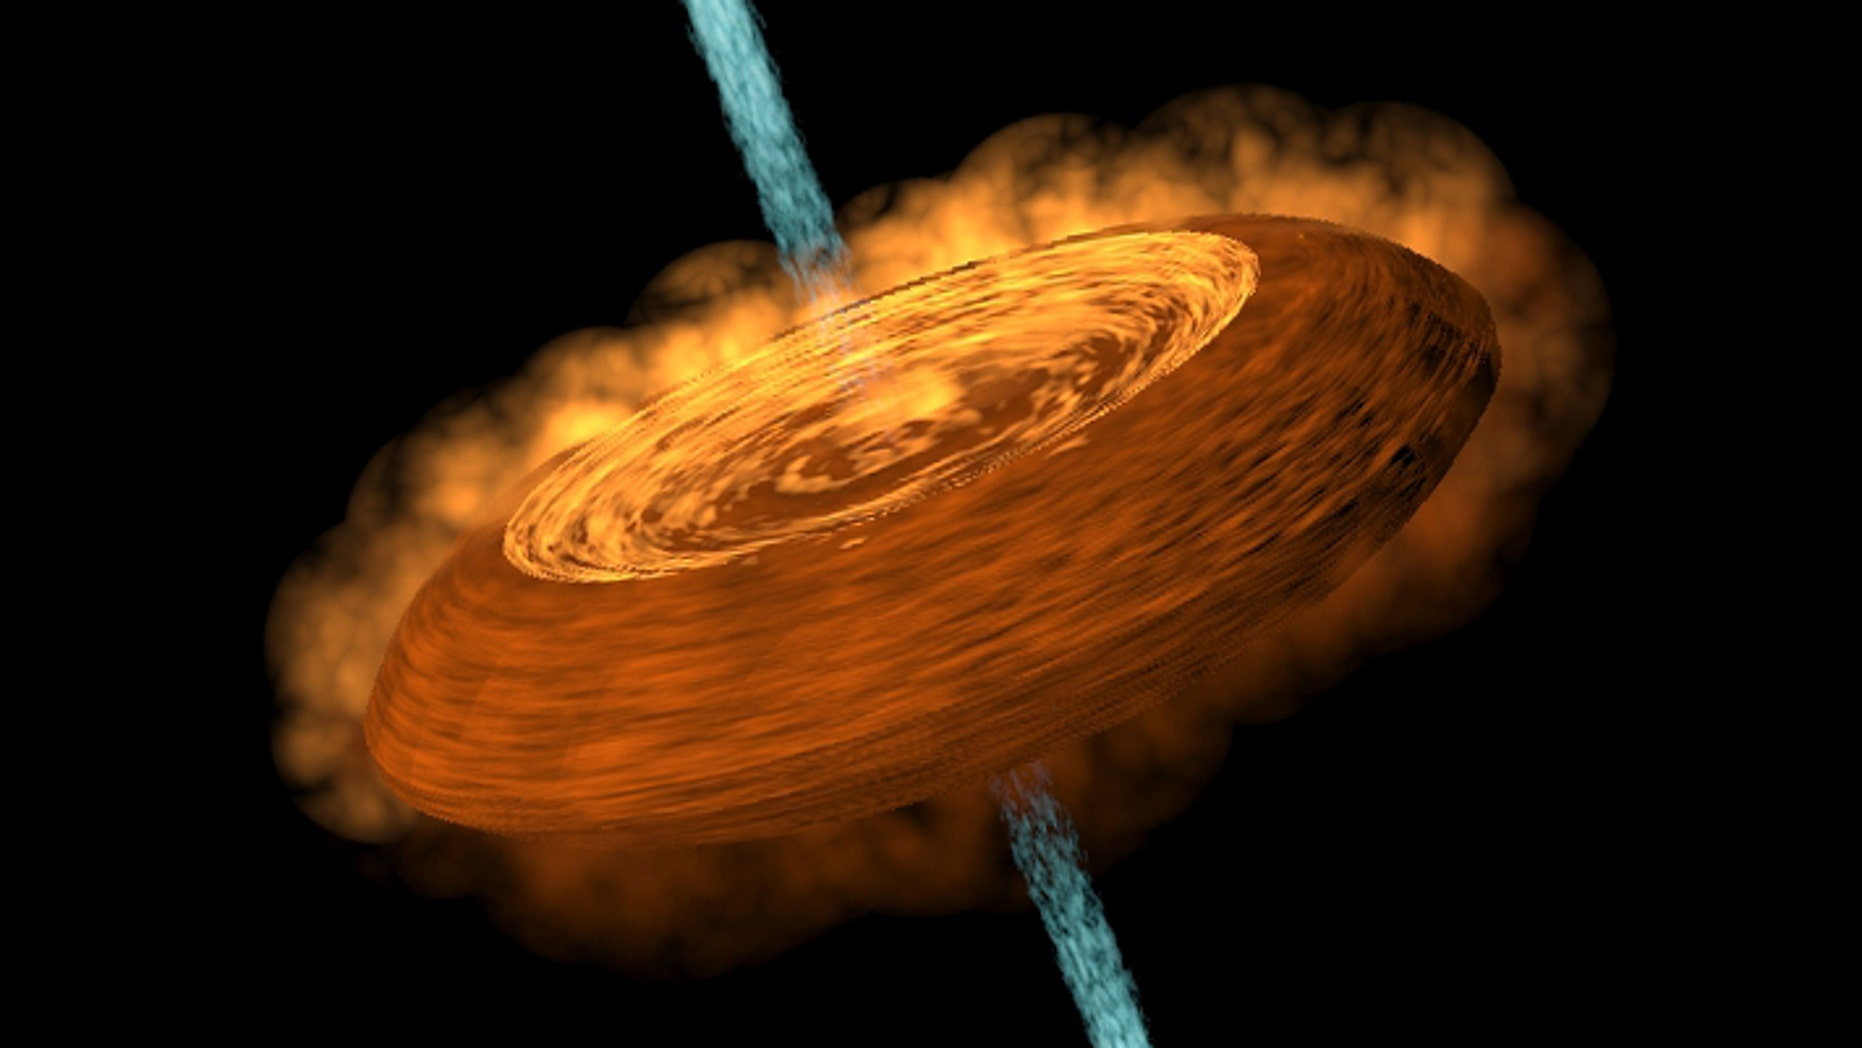 An illustration of a hamburger-shaped accretion disk feeding a young protostar, and the jets of gaseous material ejected from the young star's north and south poles.